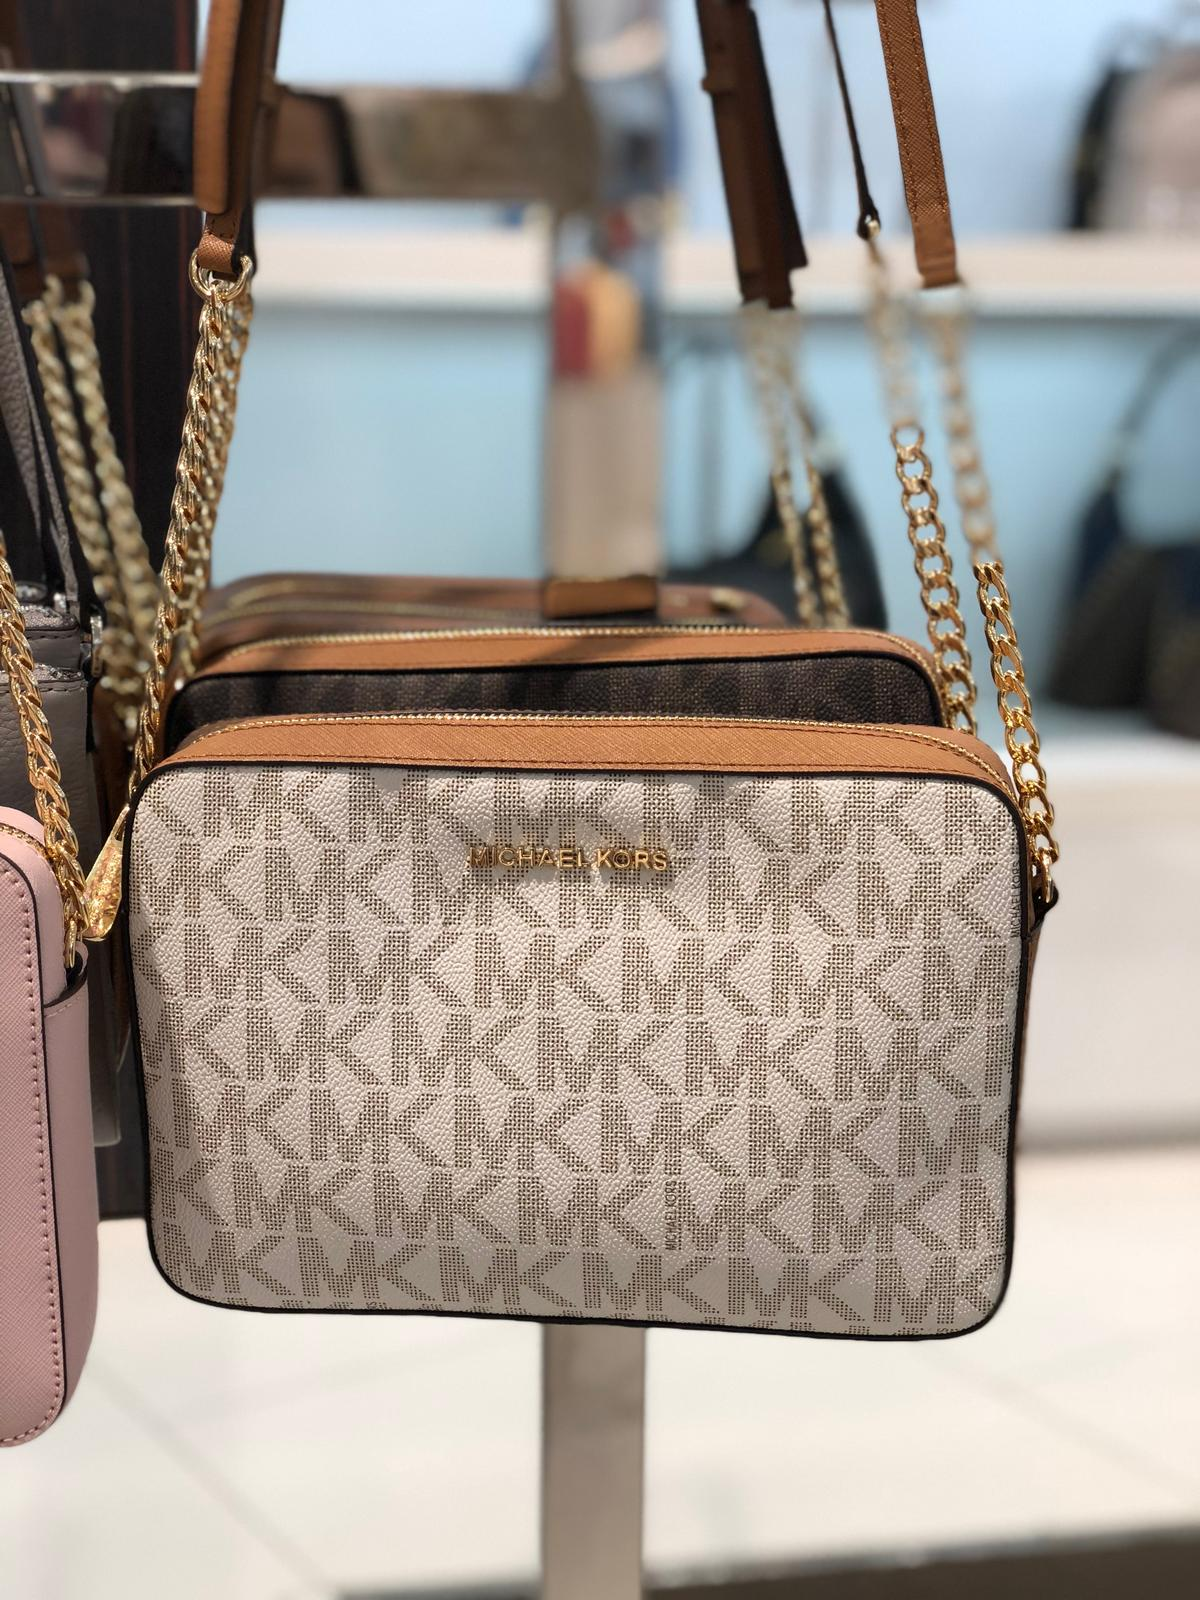 e0d35789cd Original michael kors kabelka